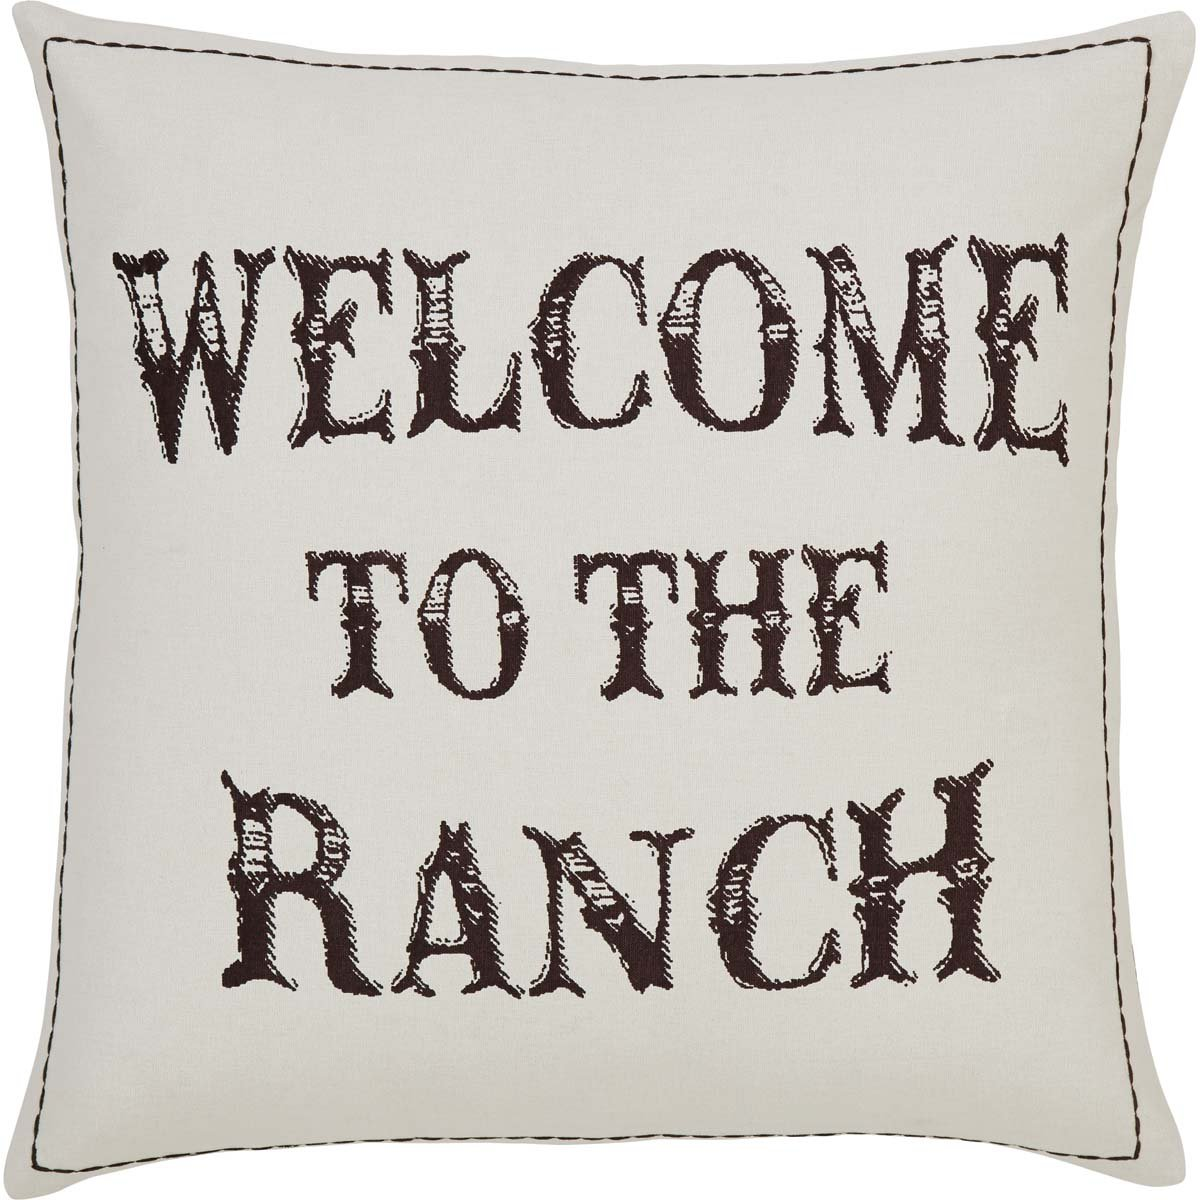 """VHC Brands Rustic & Lodge Pillows & Throws - Welcome to the Ranch Tan Down 18"""" x 18"""" Pillow"""